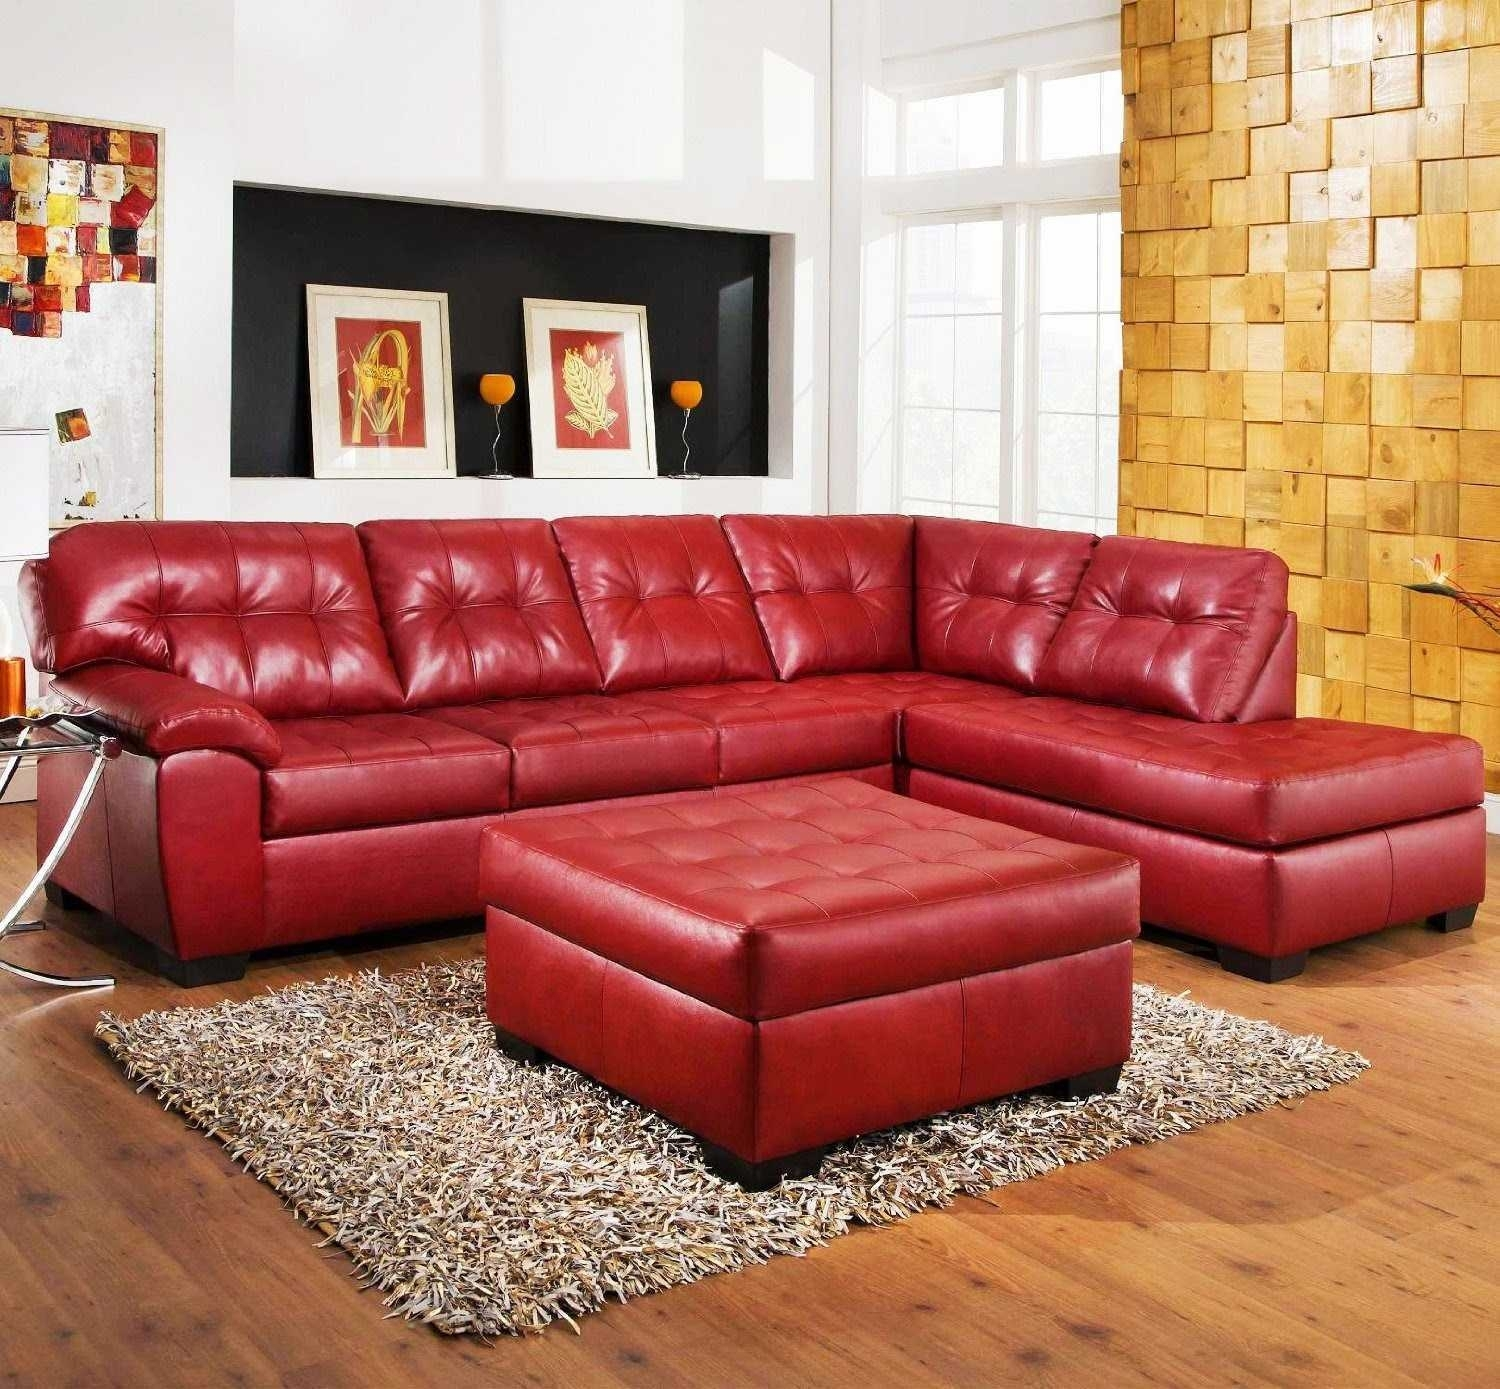 The Best Sectional Sofas Rooms Go And Ideas Pics Of To Trend Popular In Rooms To Go Sectional Sofas (View 3 of 10)